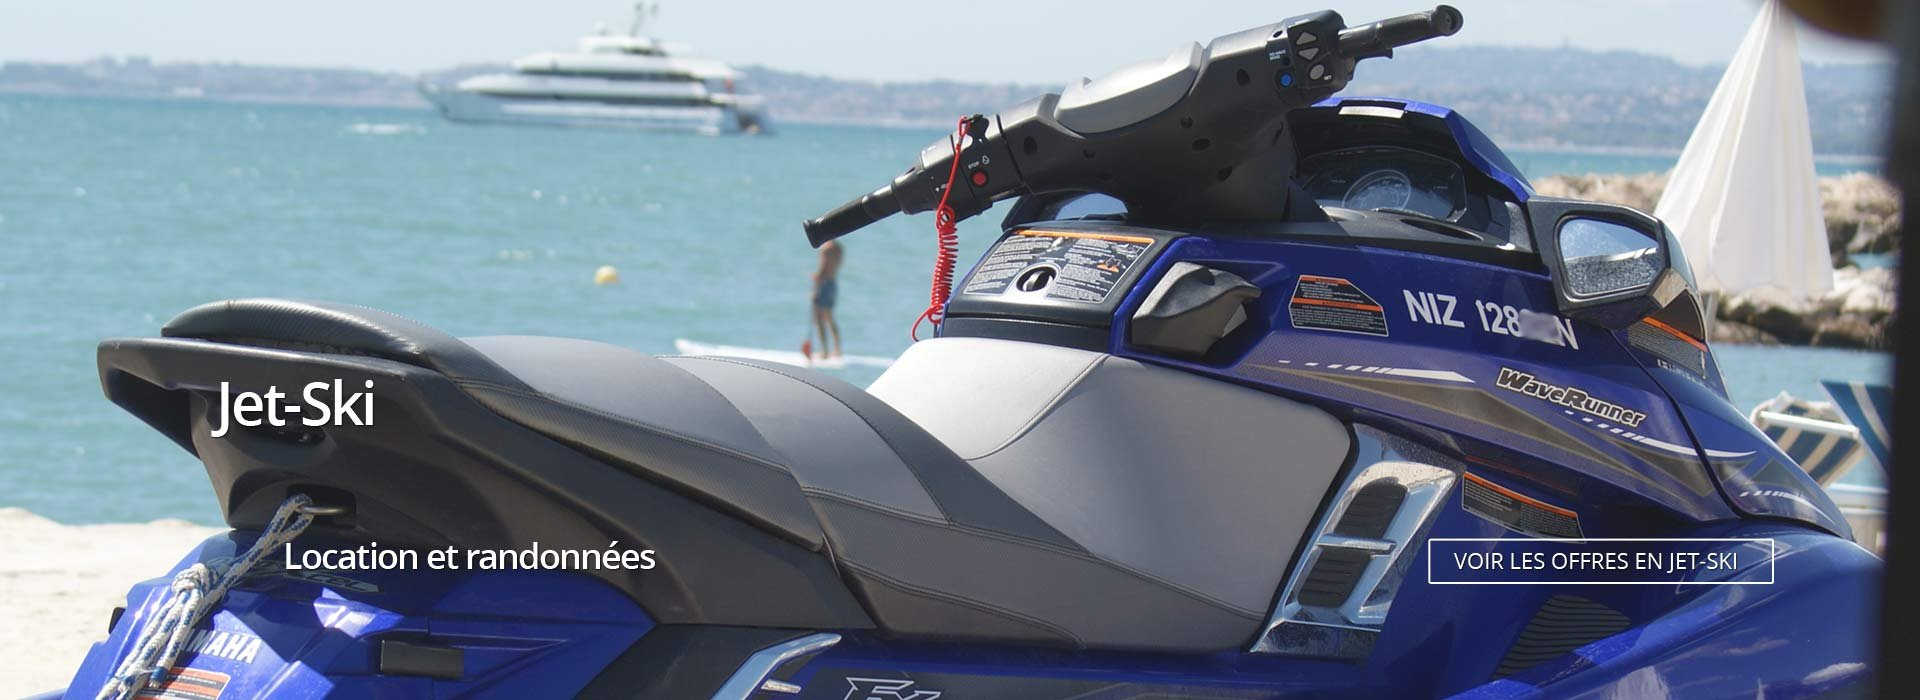 Location Jet Ski Nice 06 Saint Laurent du Var